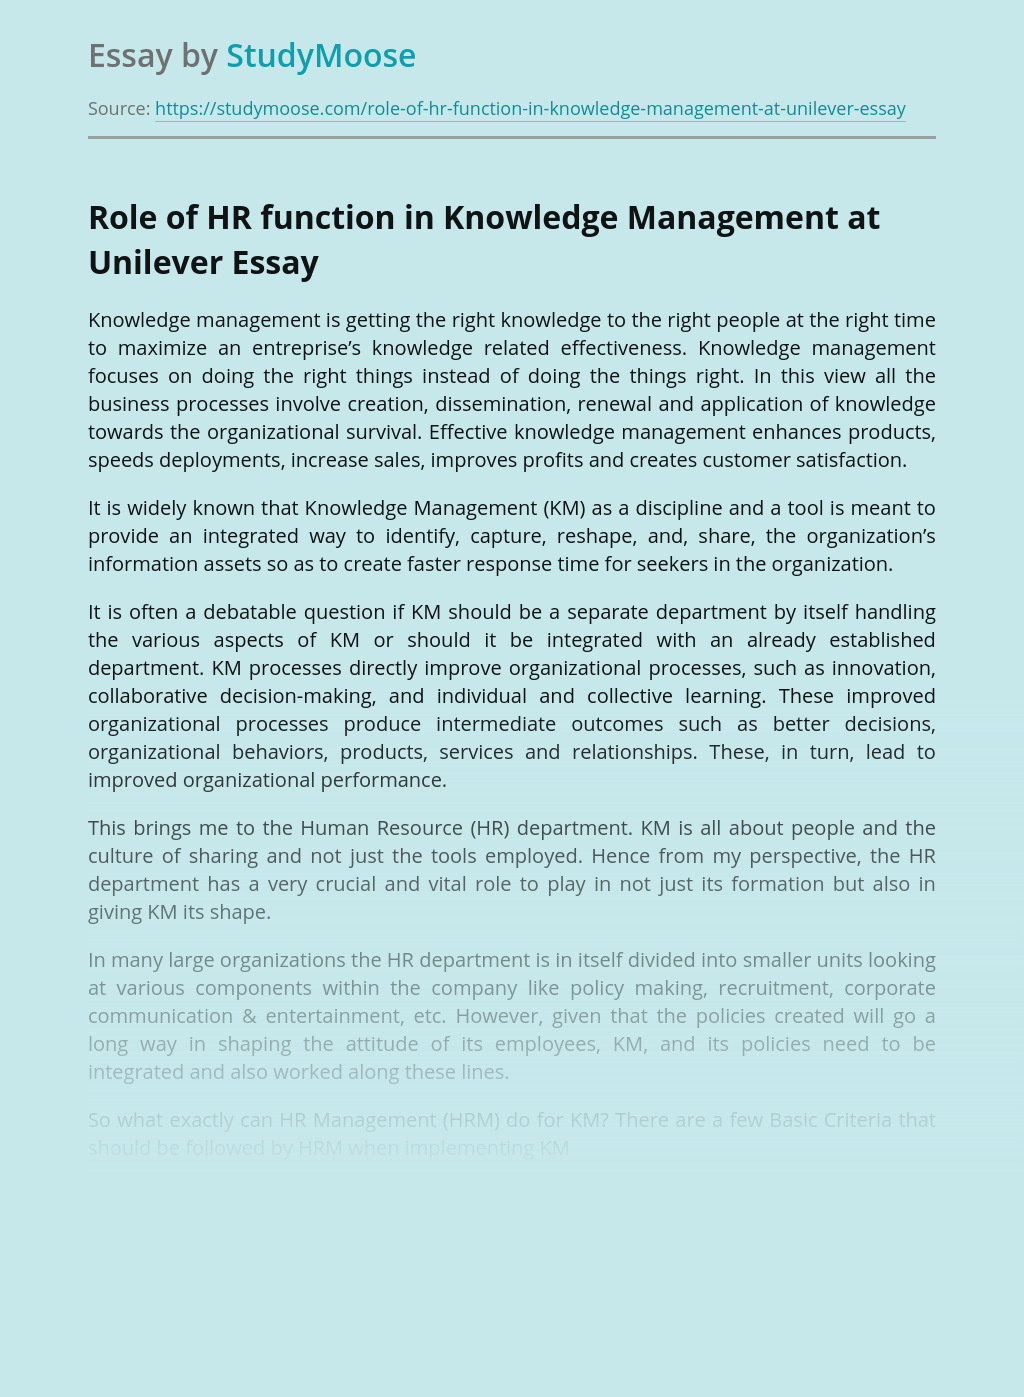 Role of HR function in Knowledge Management at Unilever